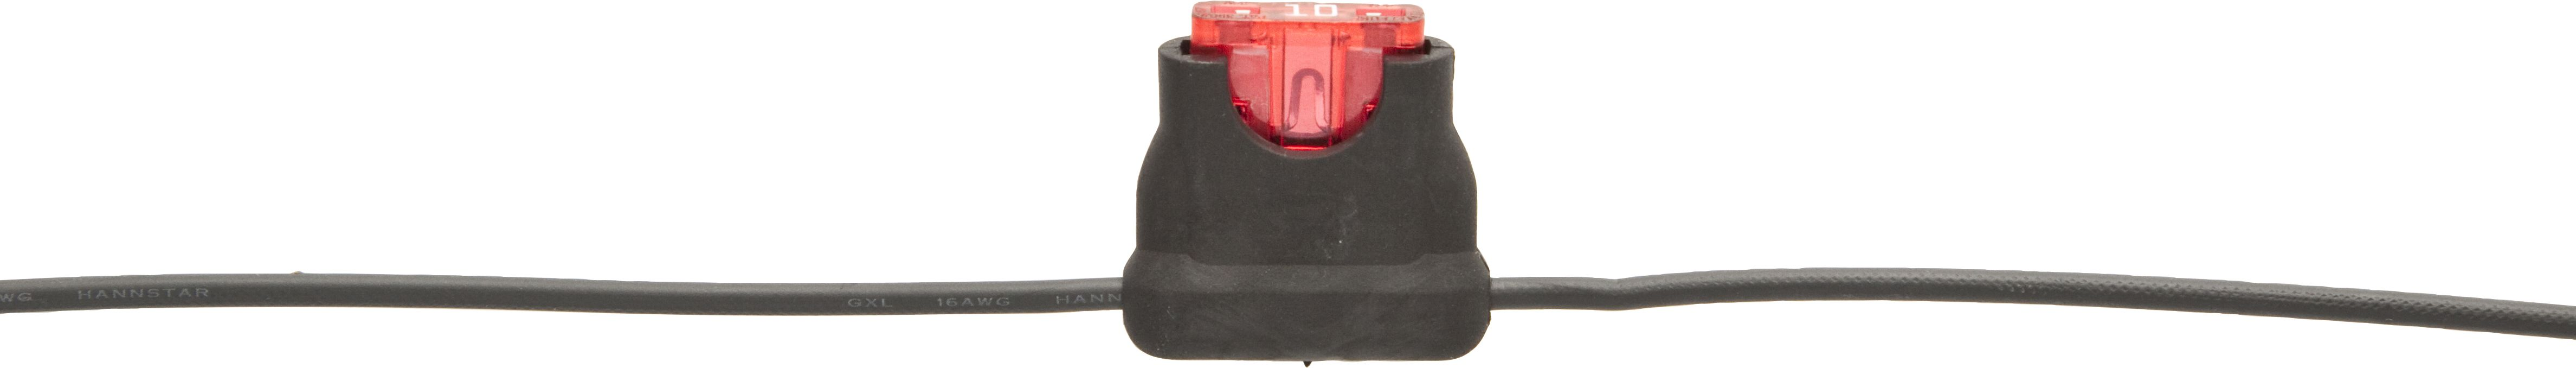 Electrical Components Littelfuse Ato Blade Fuse Holders Standard Type Fuses Types Of